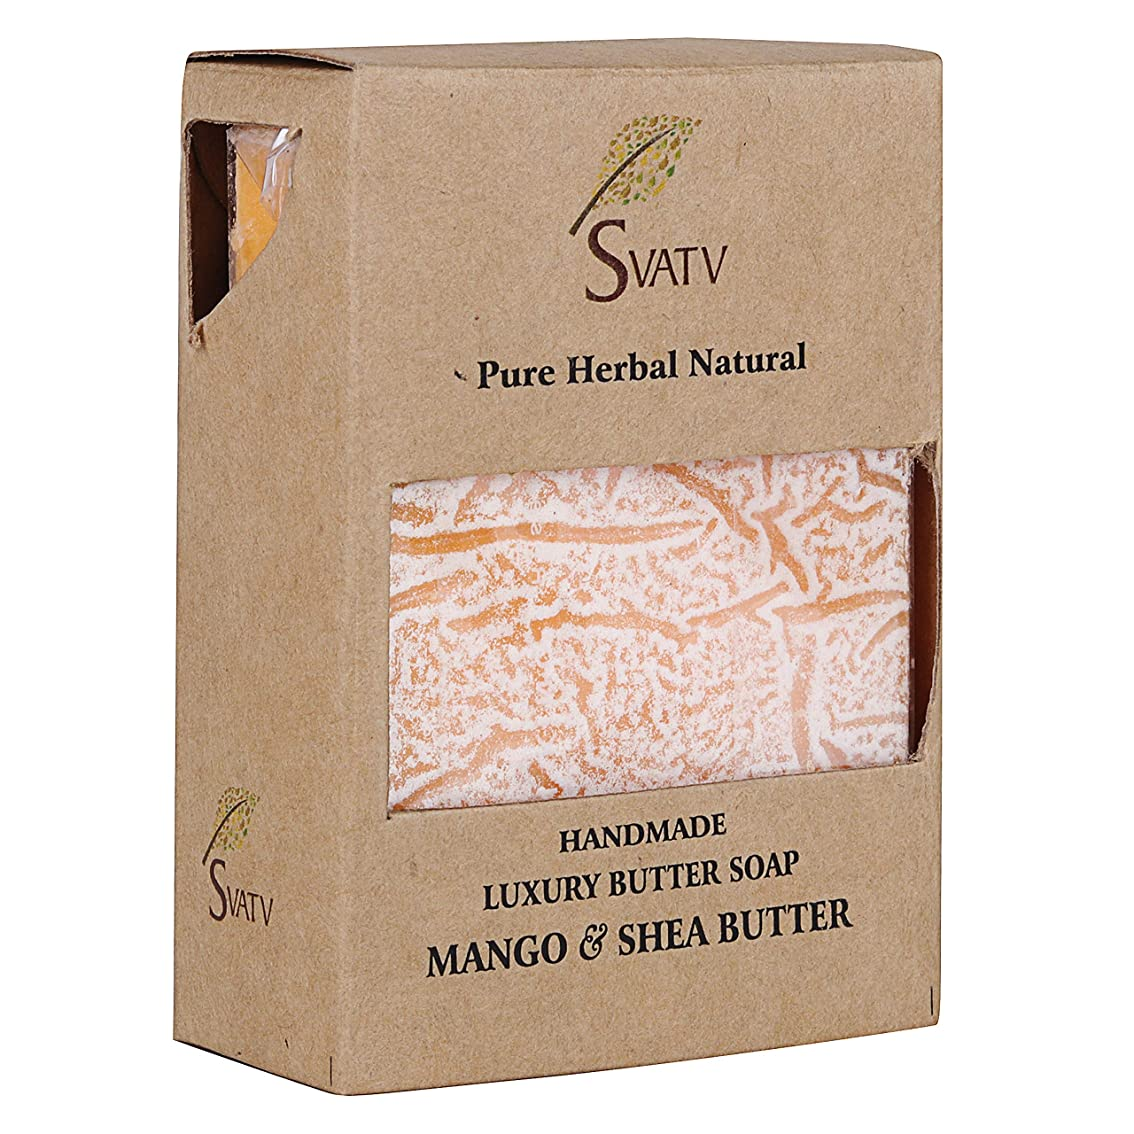 キュービック性別つぼみSVATV Handmade Luxury Butter Soap Mango & Shea Butter For All Skin types 100g Bar